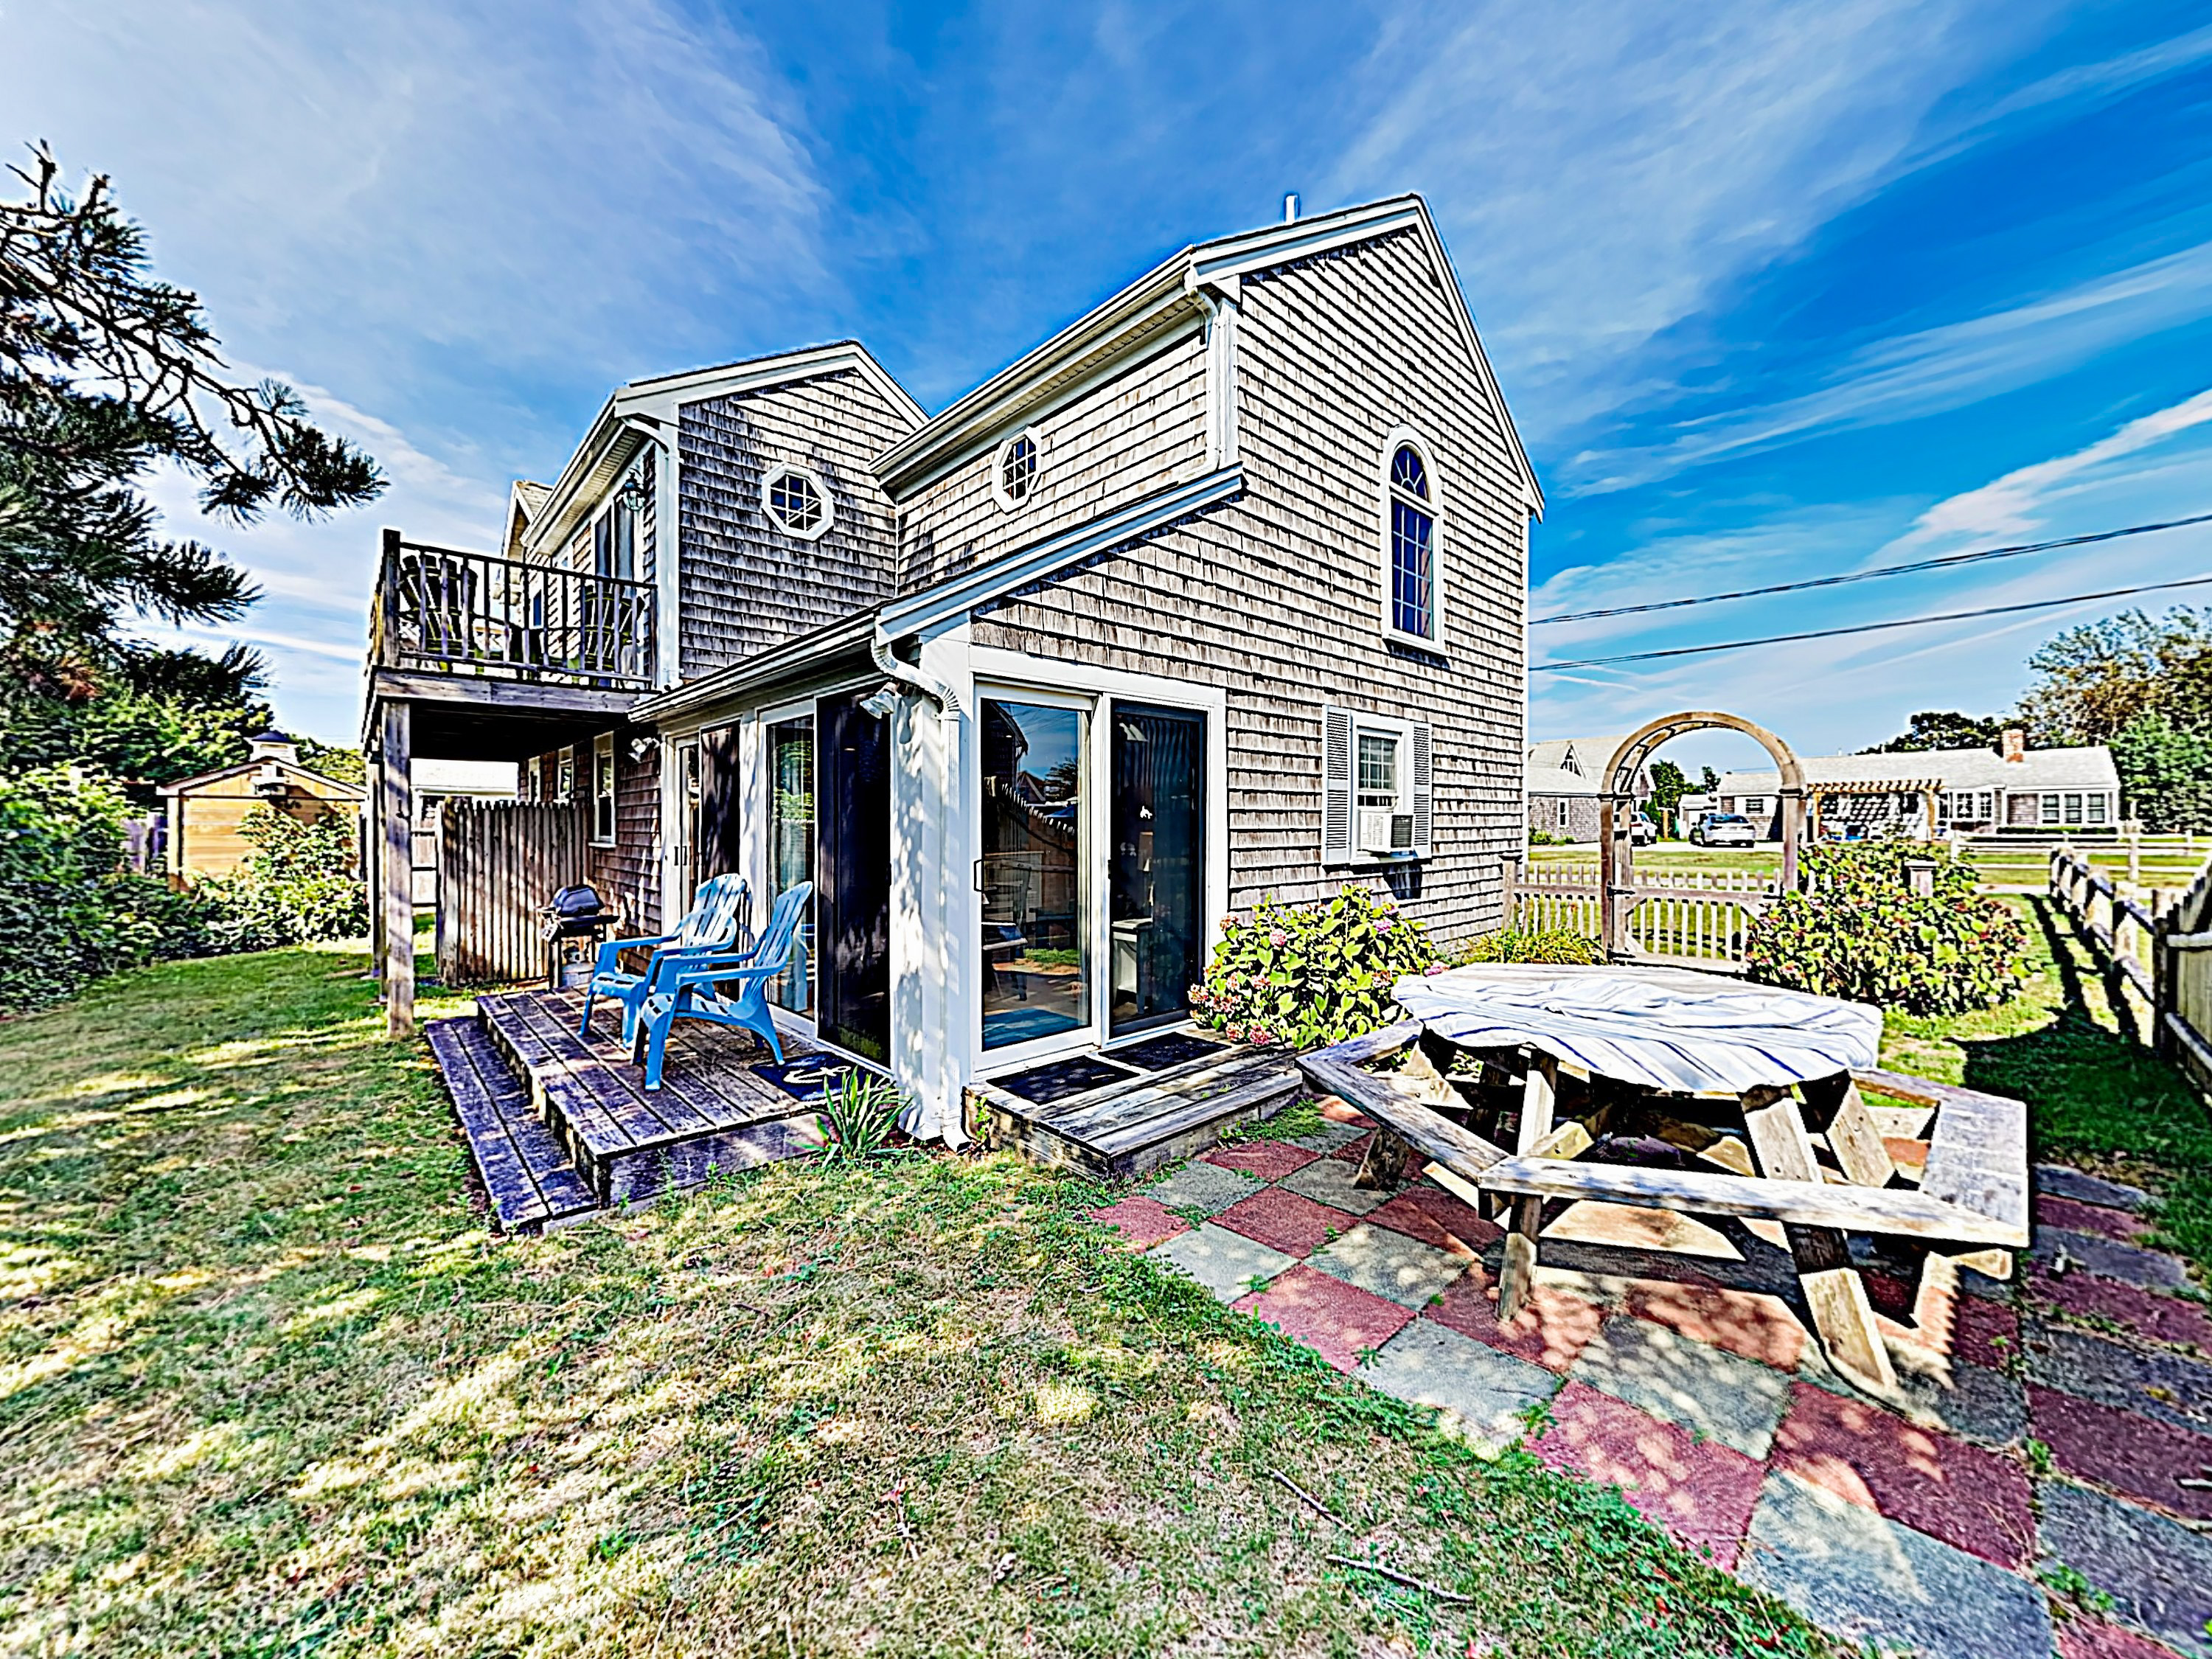 West Dennis MA Vacation Rental Welcome to Cape